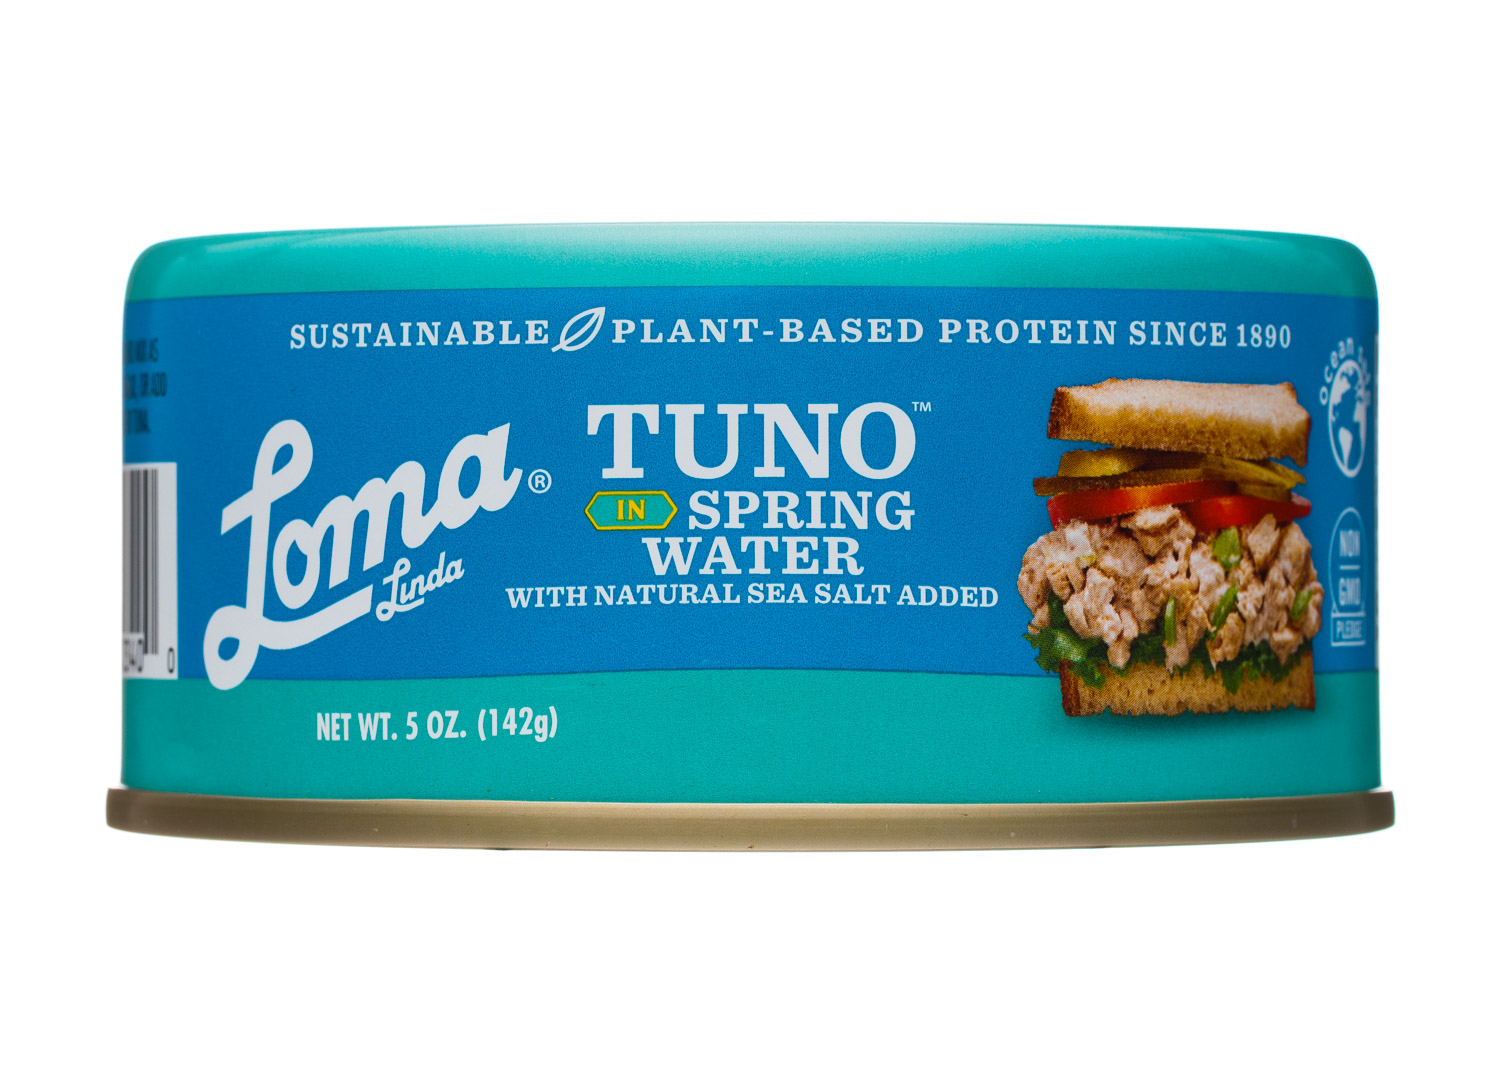 Tuno in Spring Water